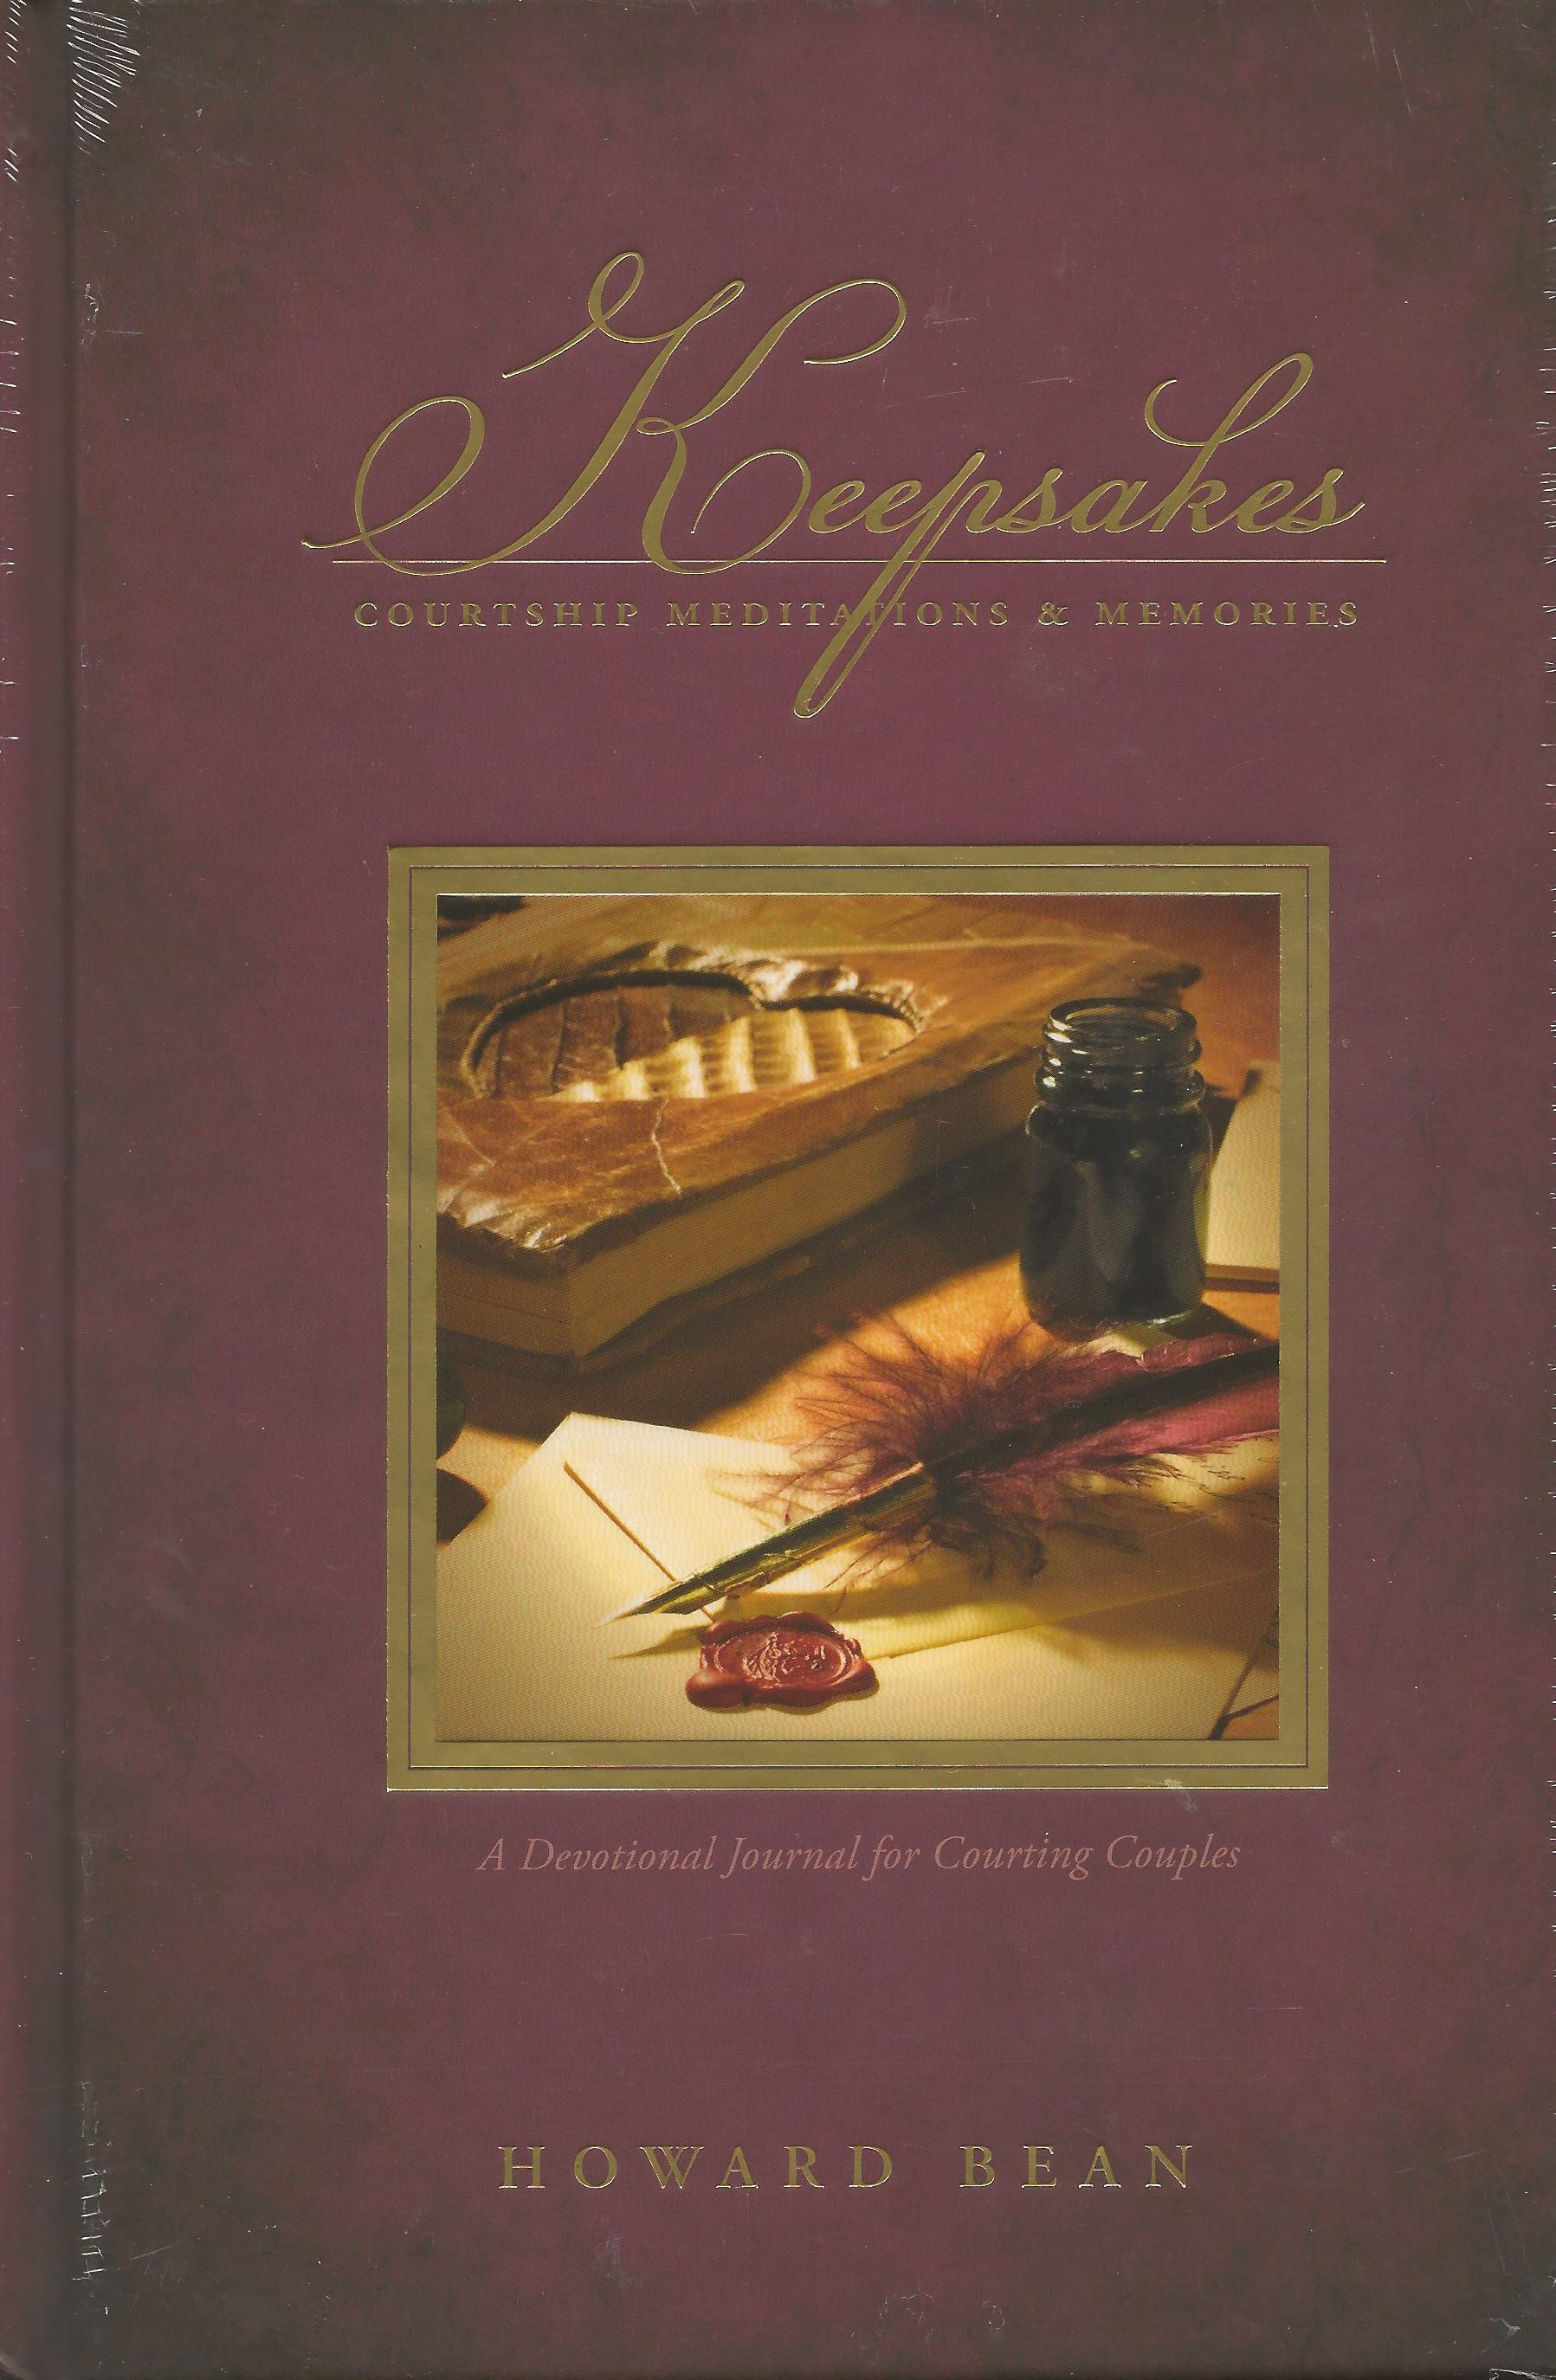 KEEPSAKES: COURTSHIP MEDITATIONS & MEMORIES Howard Bean